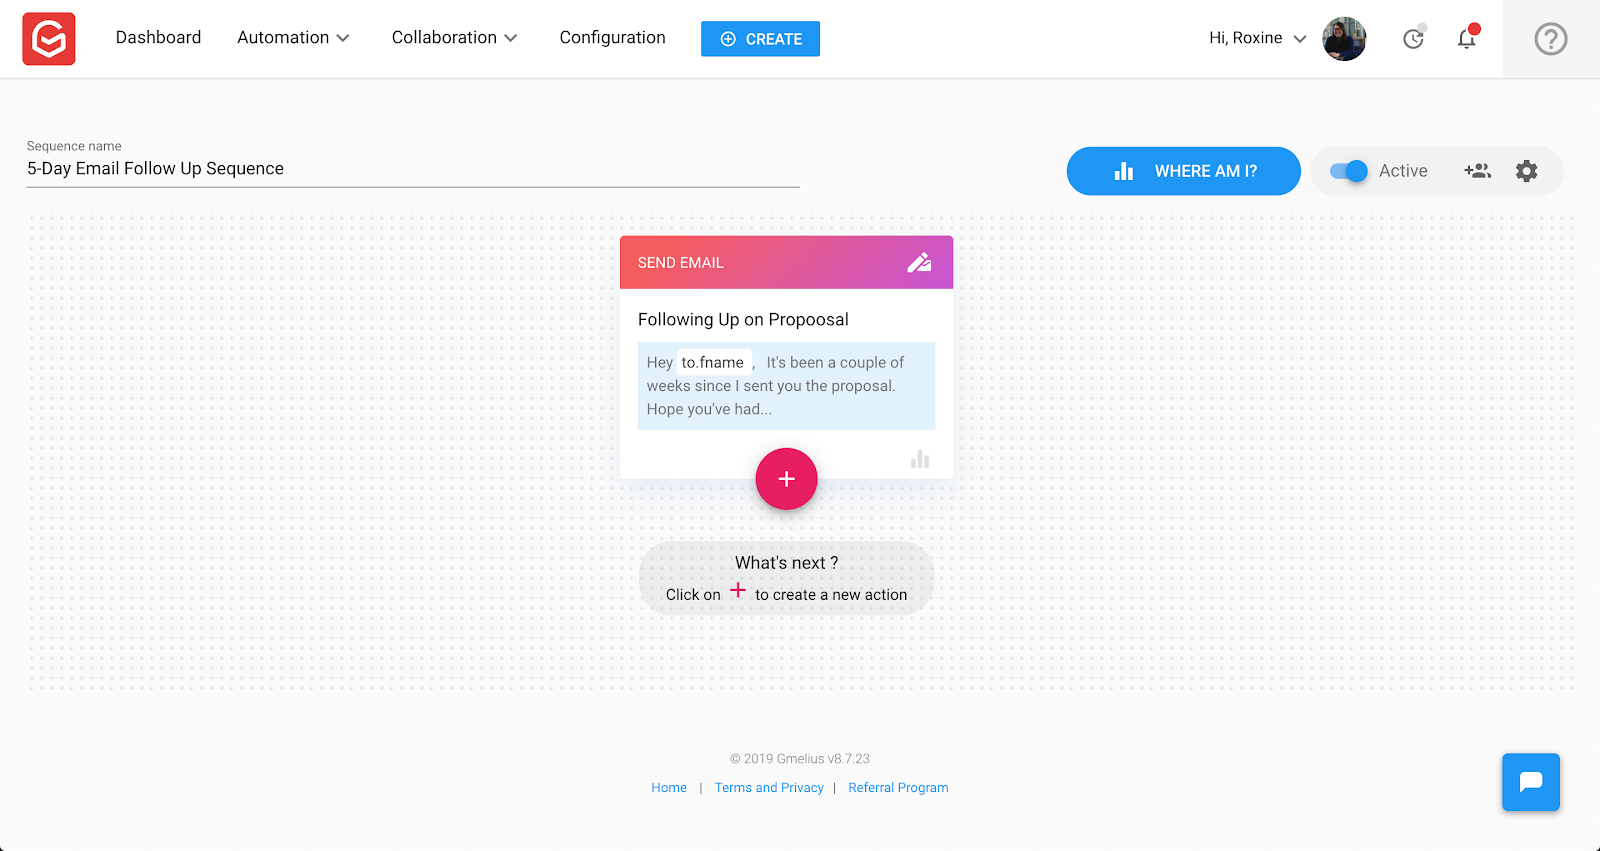 Email Automation: Add more drip emails to the sequence.